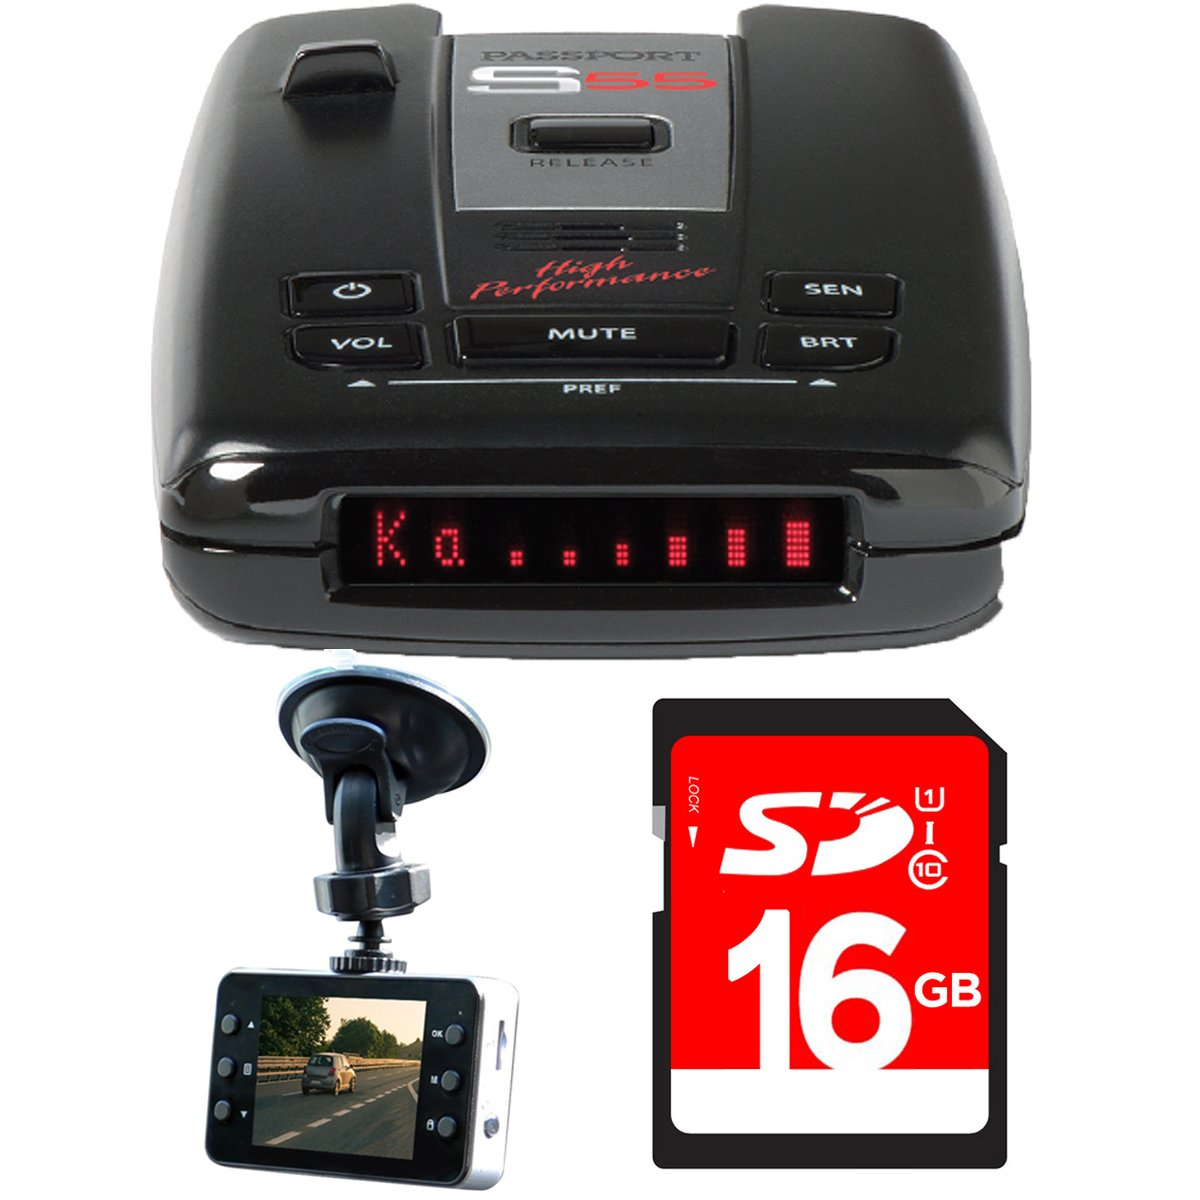 Escort Passport S55 High Performance Radar and Laser Detector with DSP with Bundle Includes, Xtreme Automotive HD DVR IR Night Vision HD Dash Camera w/ 2.4'' LCD & 16GB SDHC High Speed Memory Card by Escort